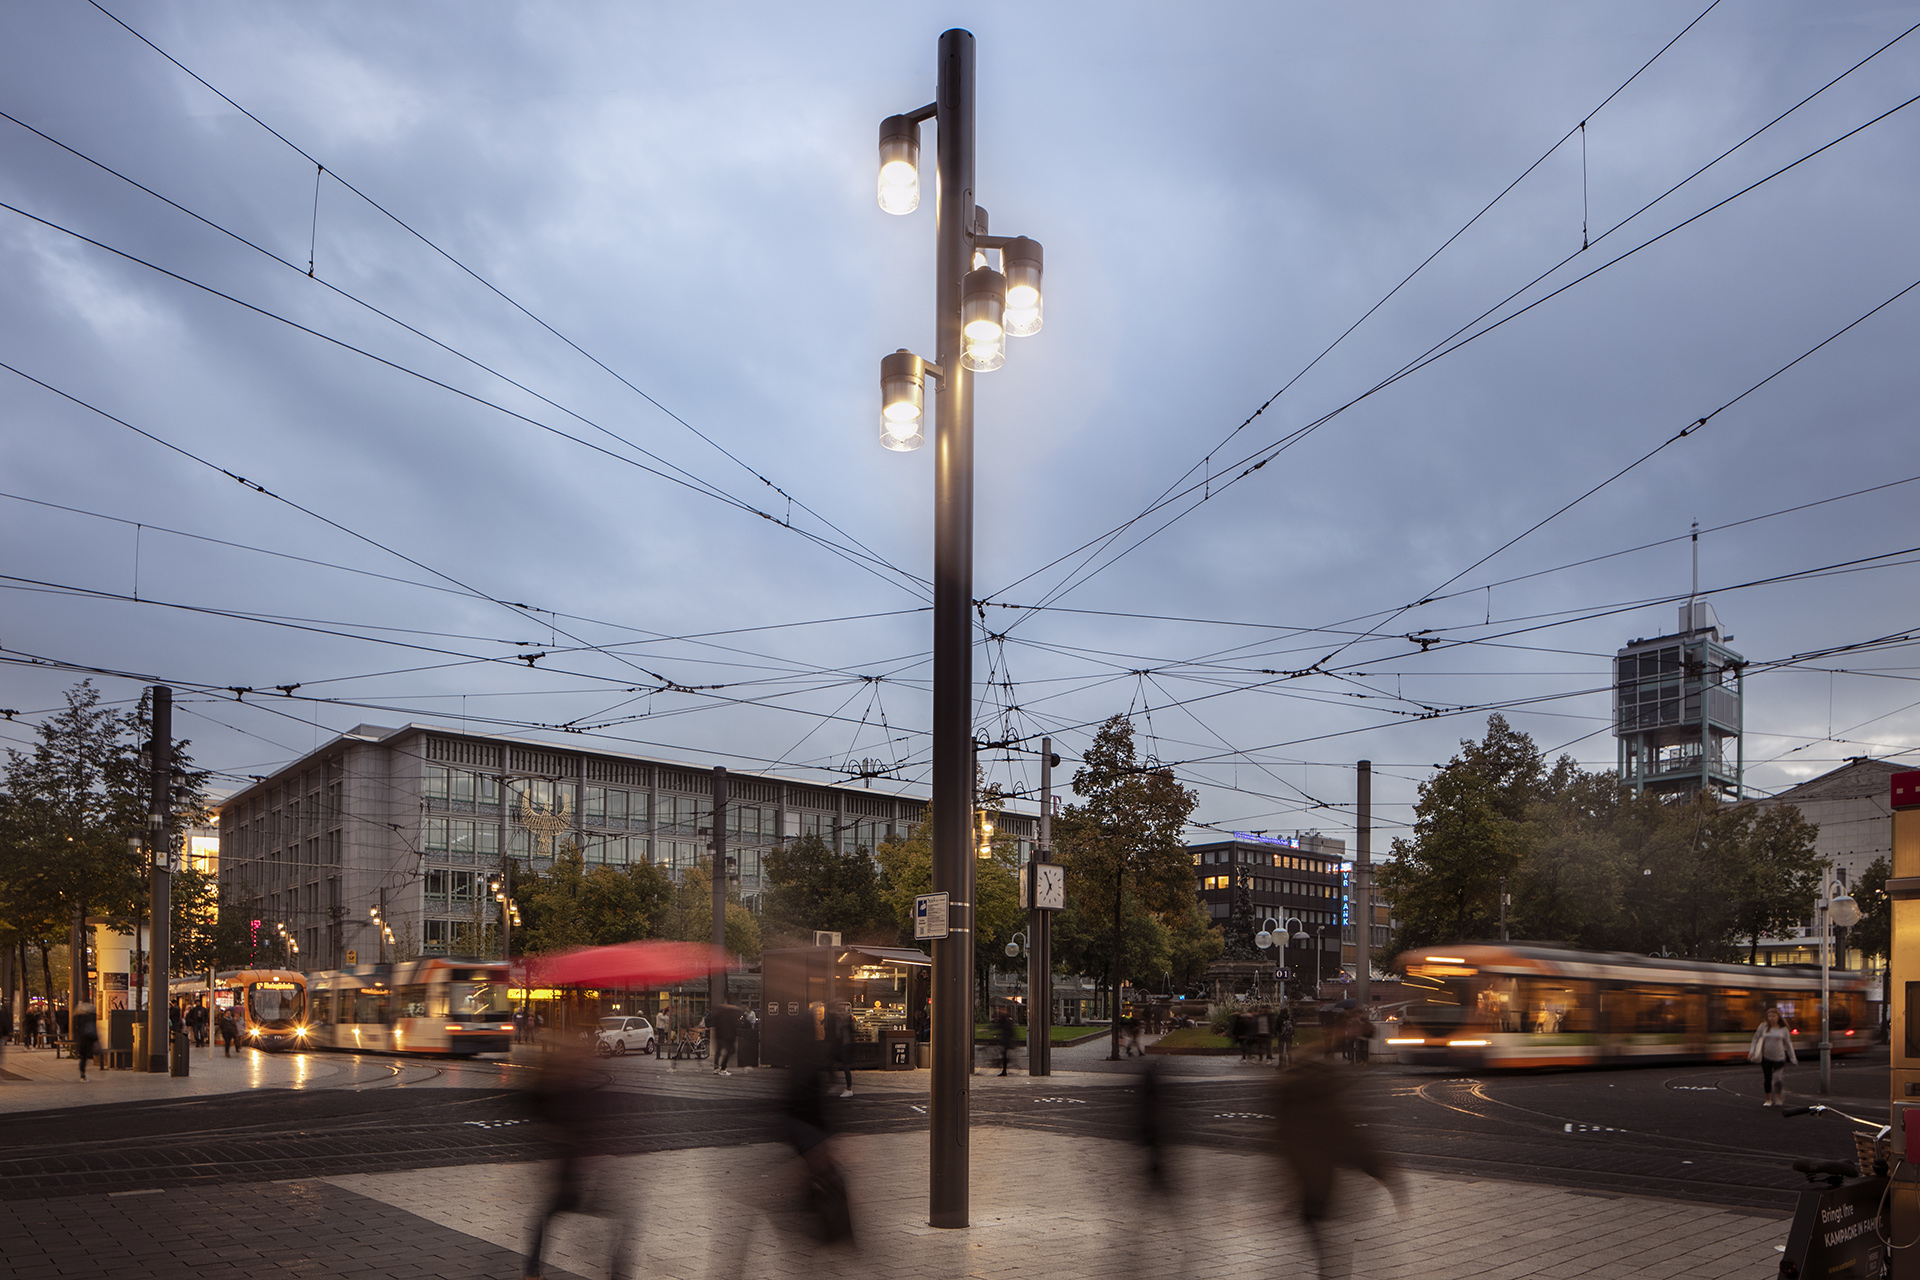 Urban lighting guide people so that they feel safe, secure and at ease to continue shopping as natural light fades.